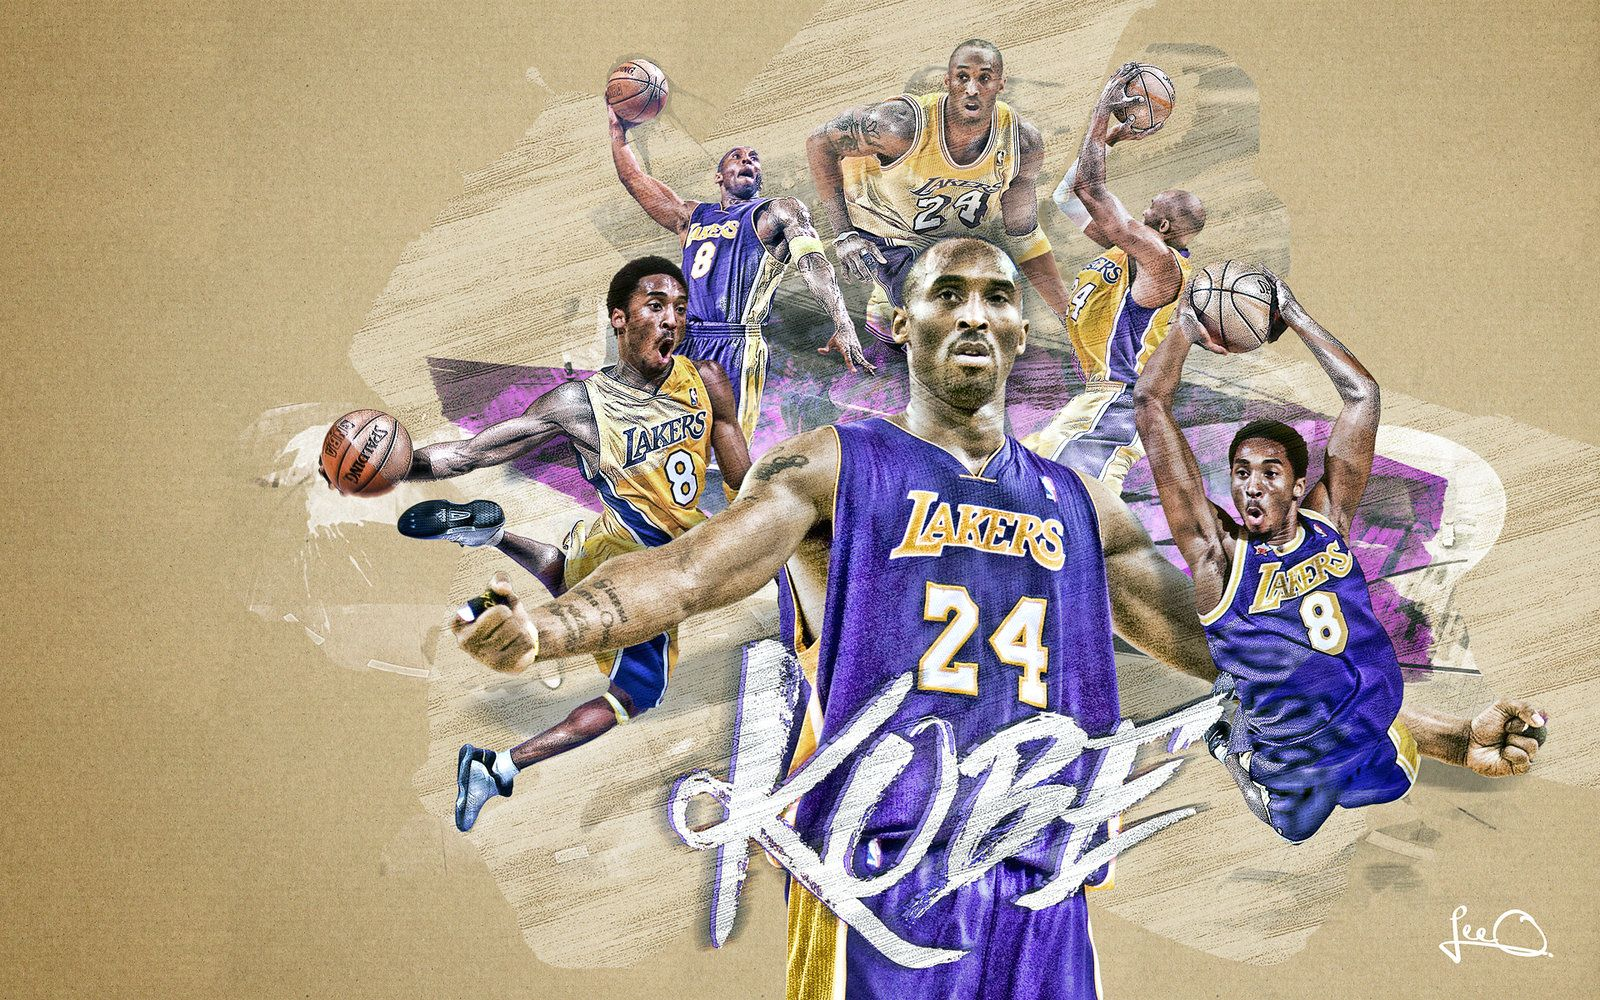 Download Kobe Bryant Wallpaper AQ27 > Mlebu Kobe bryant